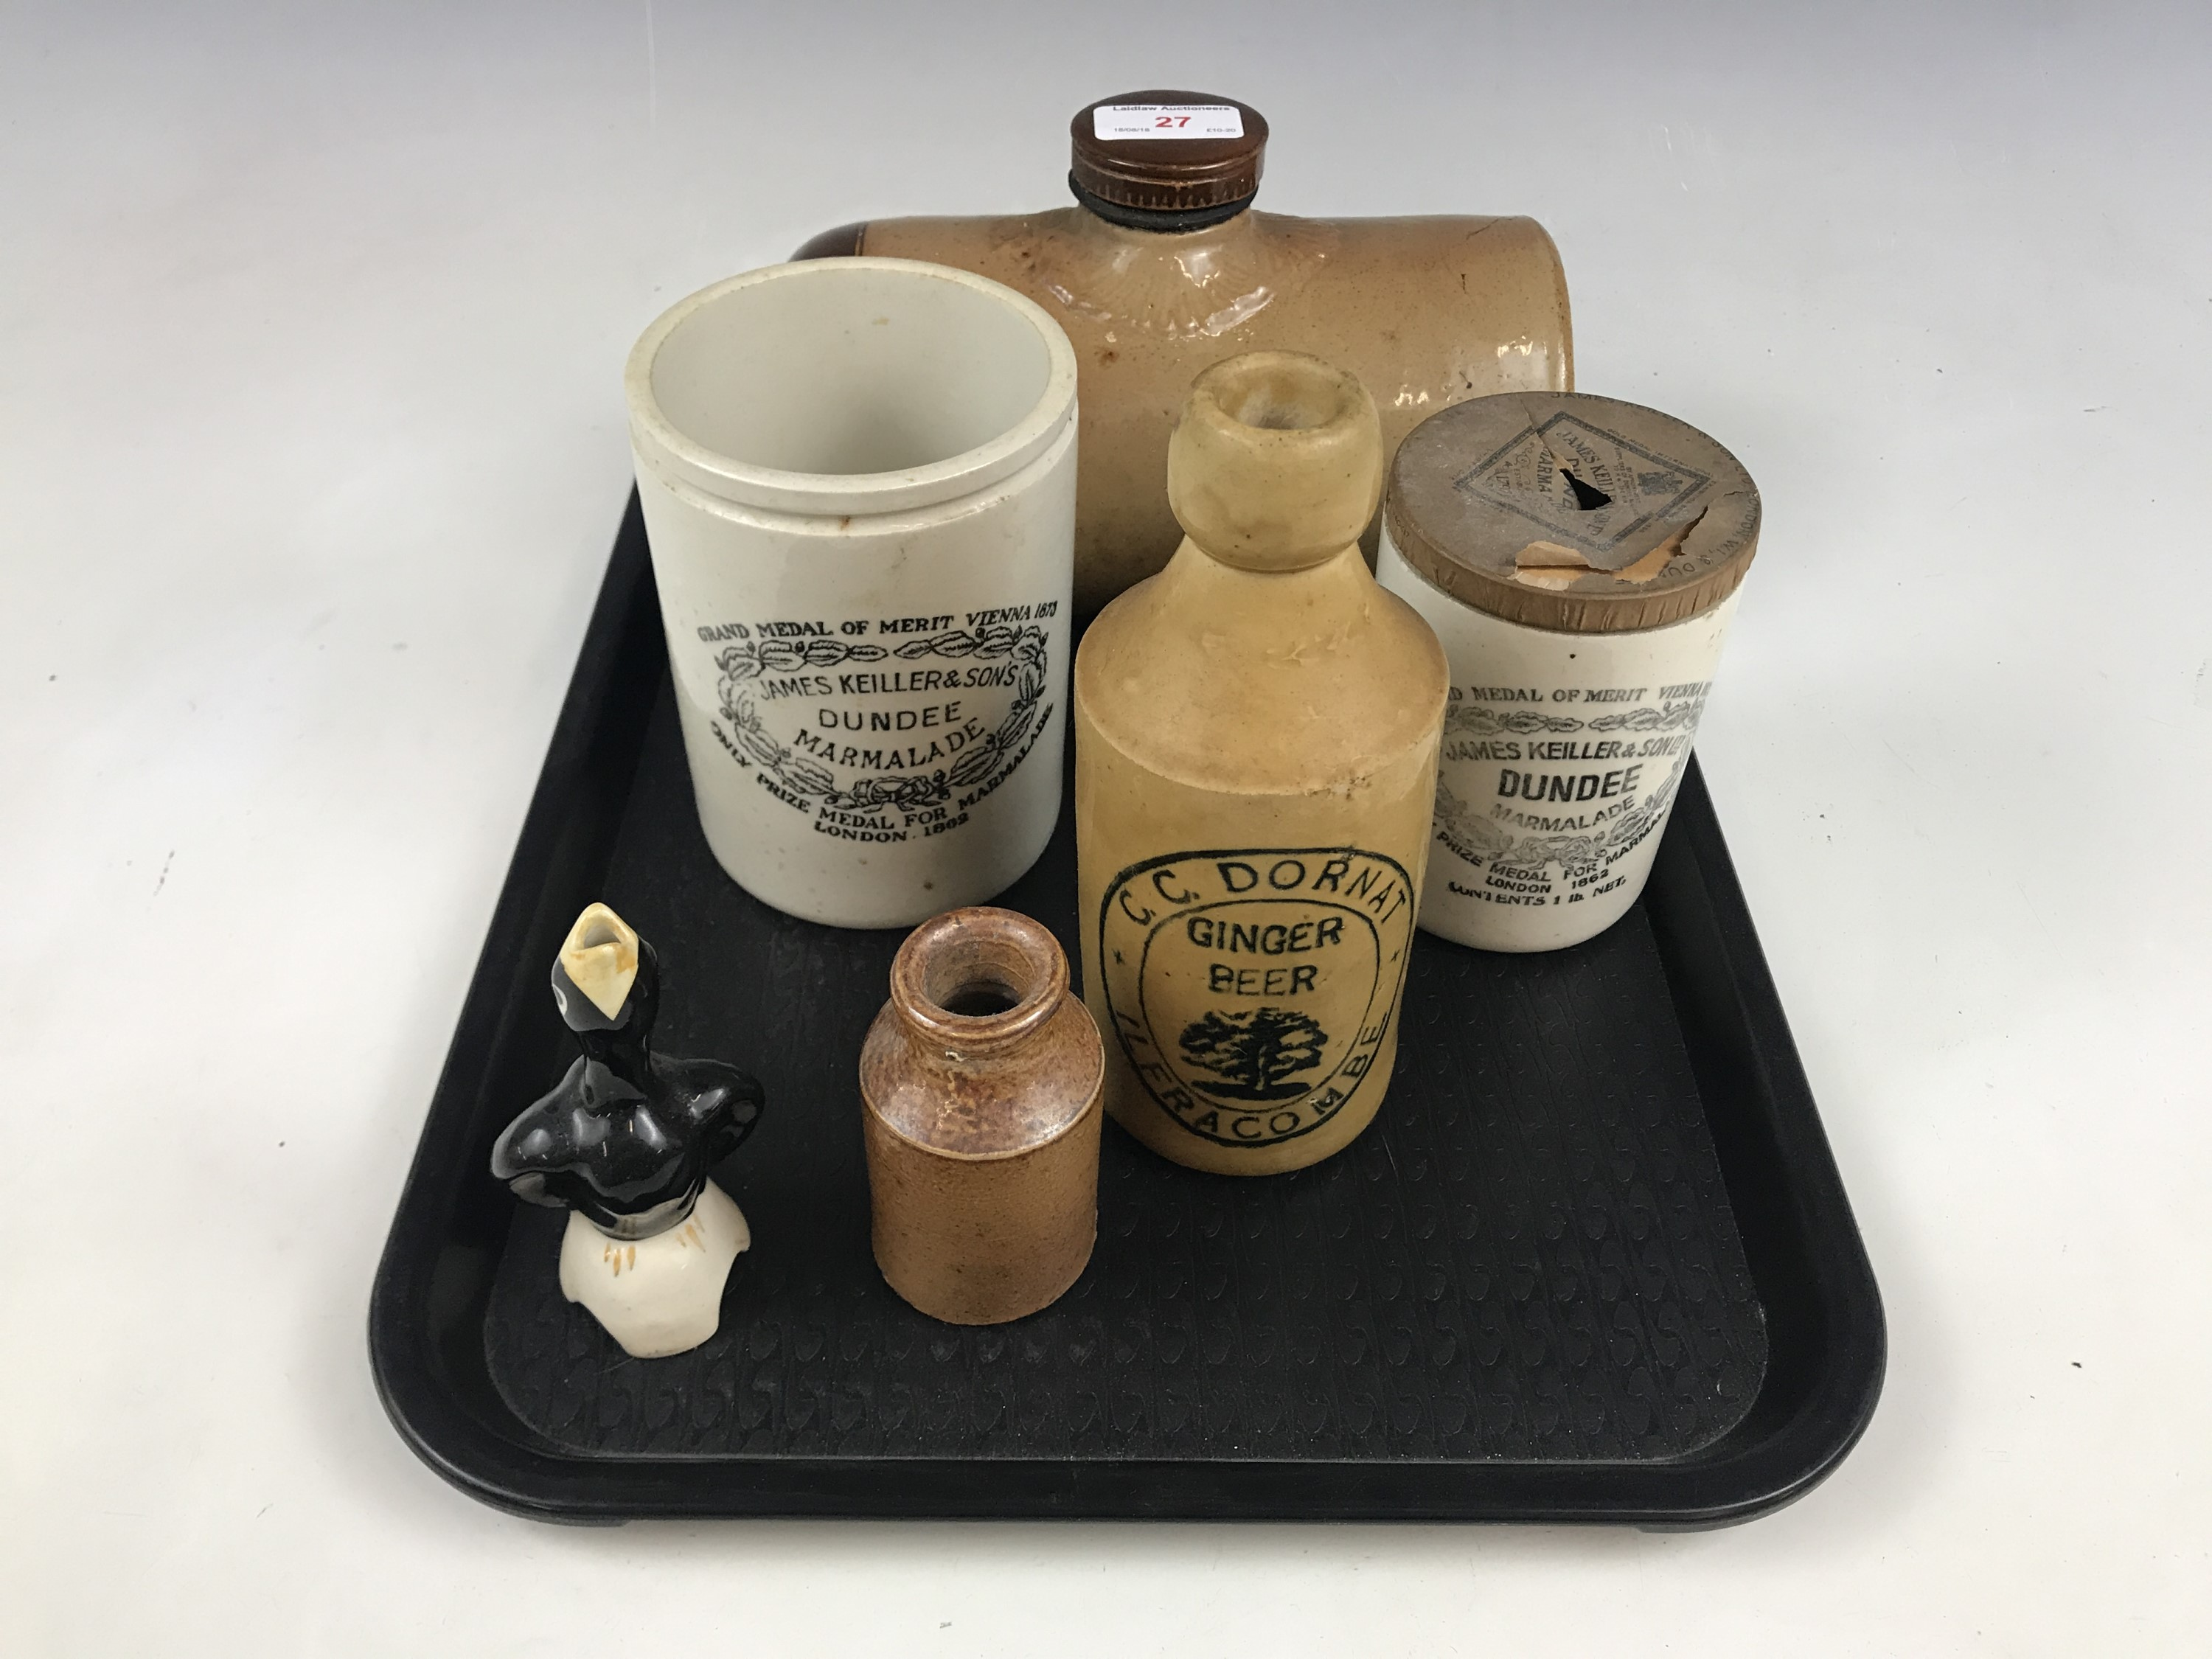 Lot 27 - Vintage stoneware household / kitchen items, including James Keiller & Sons marmalade jars, a C.